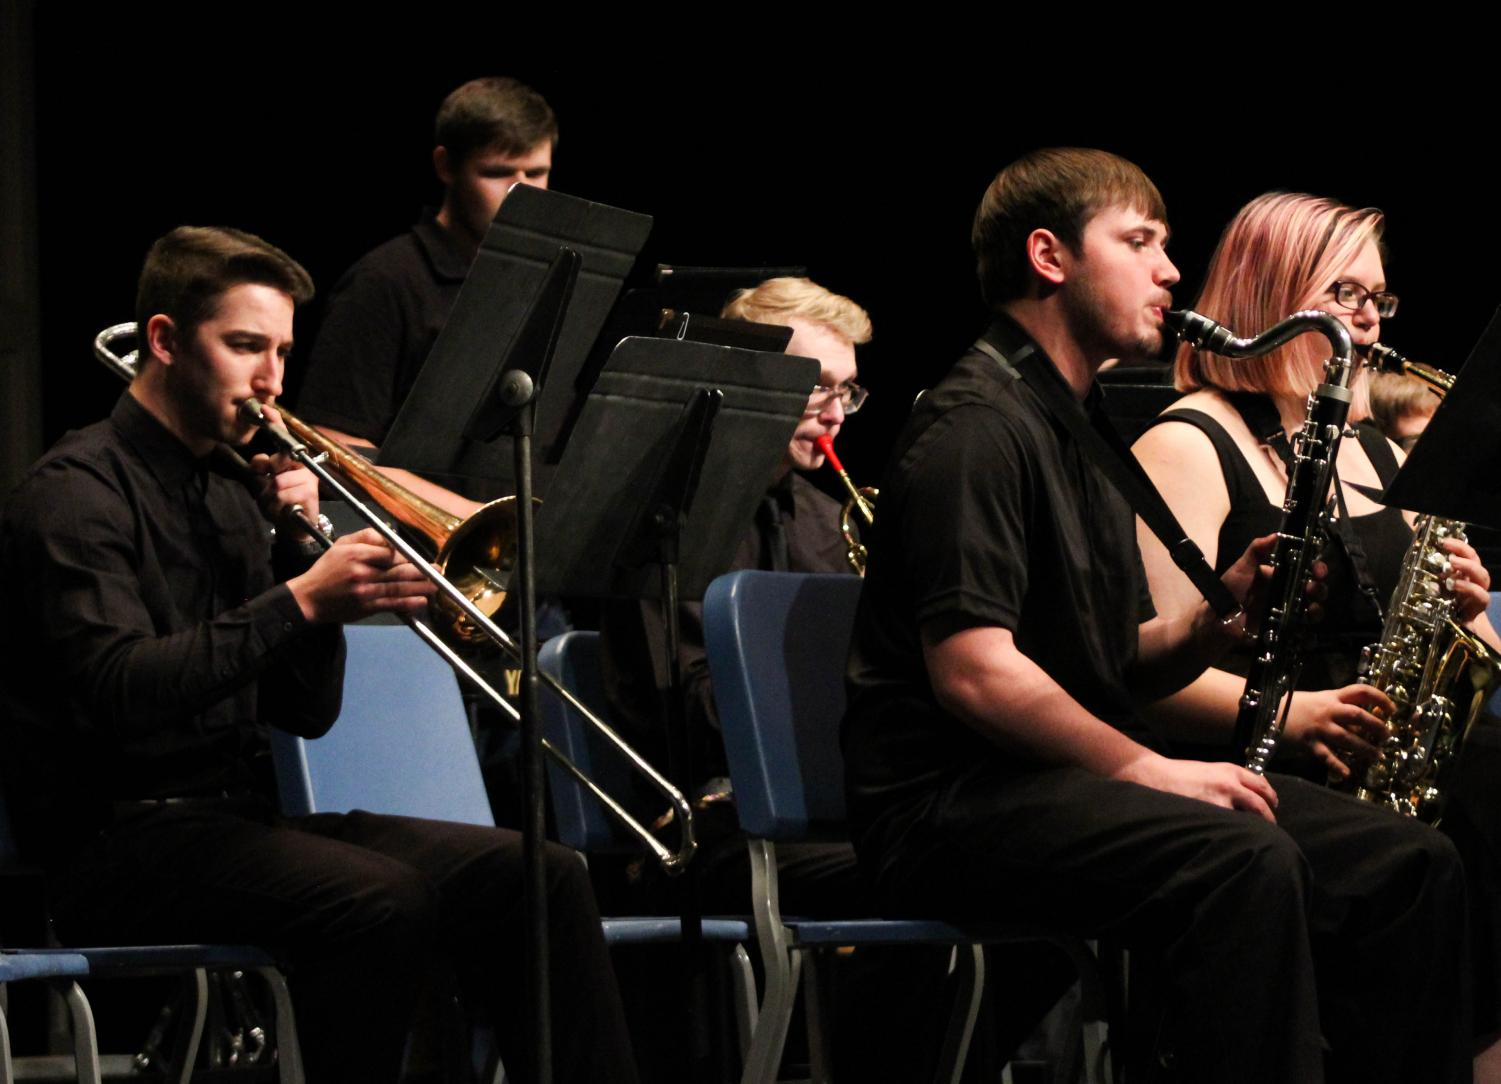 The+Fort+Scott+Community+College+Band+performed+four+selections+during+the+combined+concert.